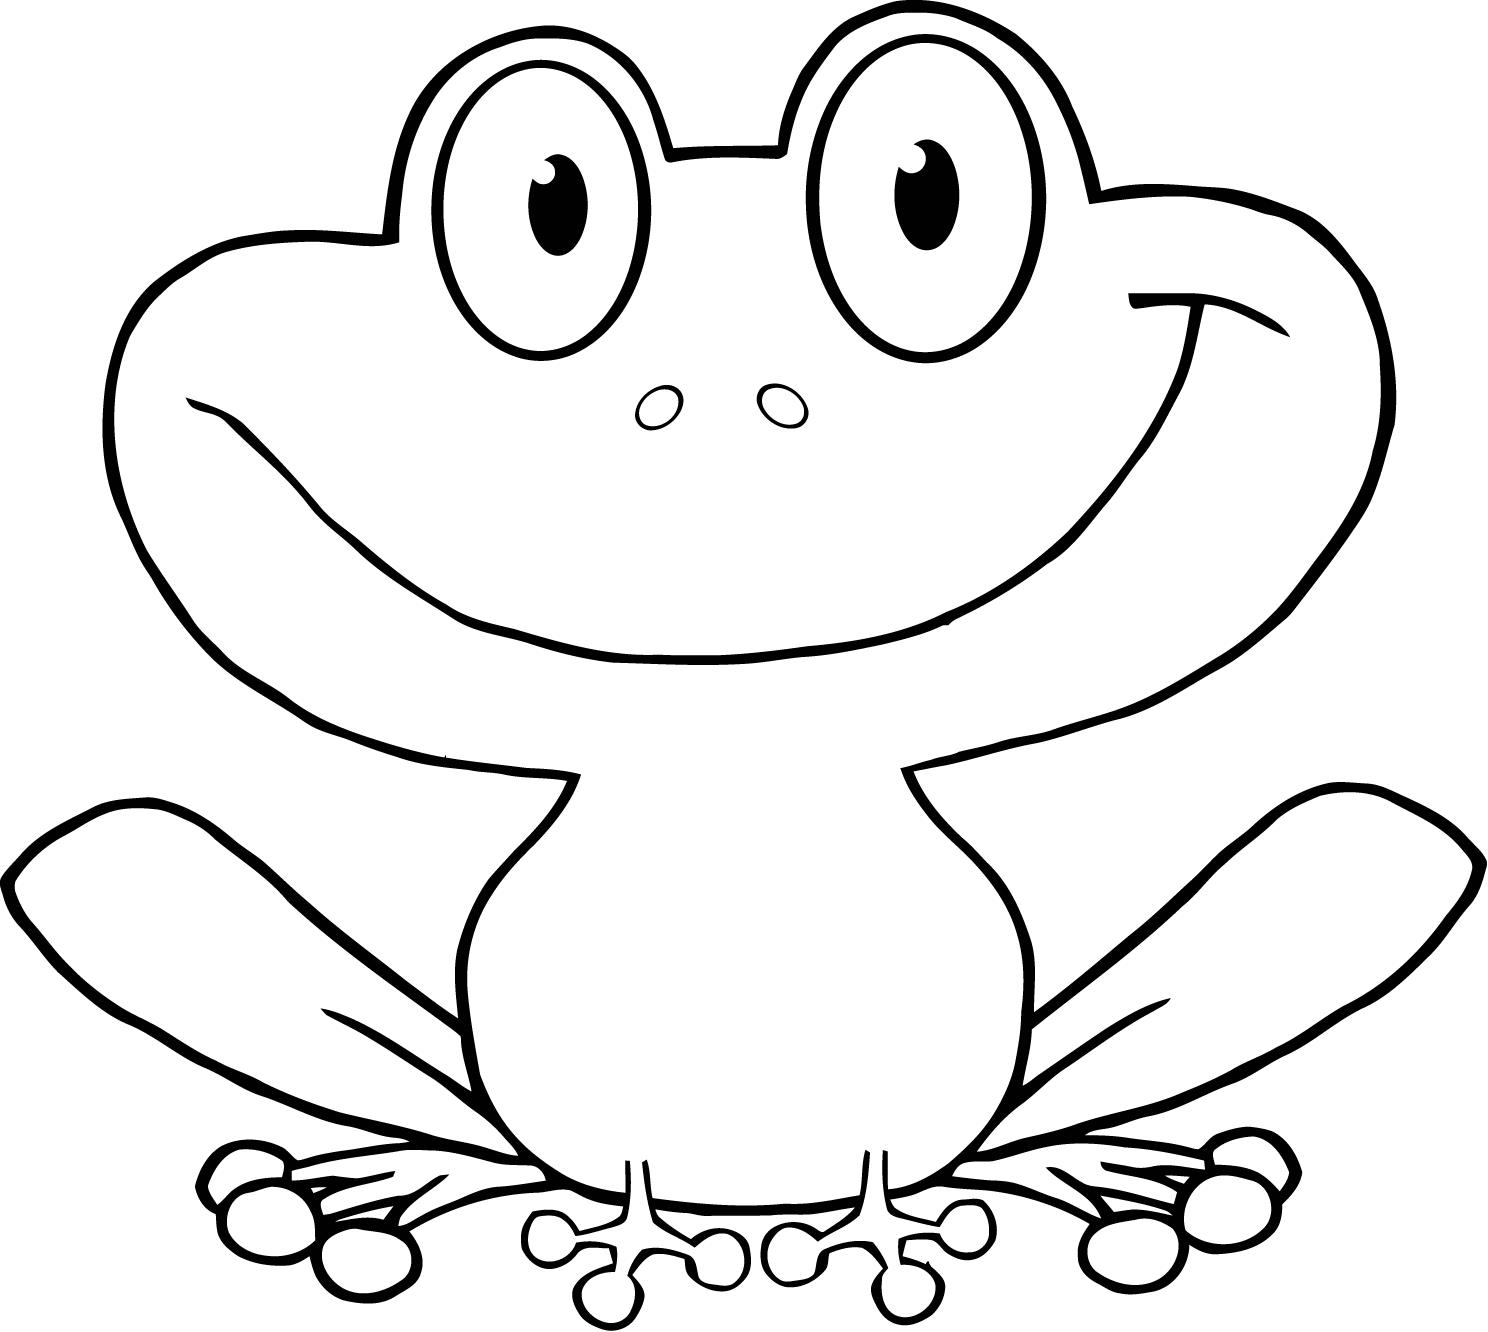 Free Frog Cartoon Outline Download Free Clip Art Free